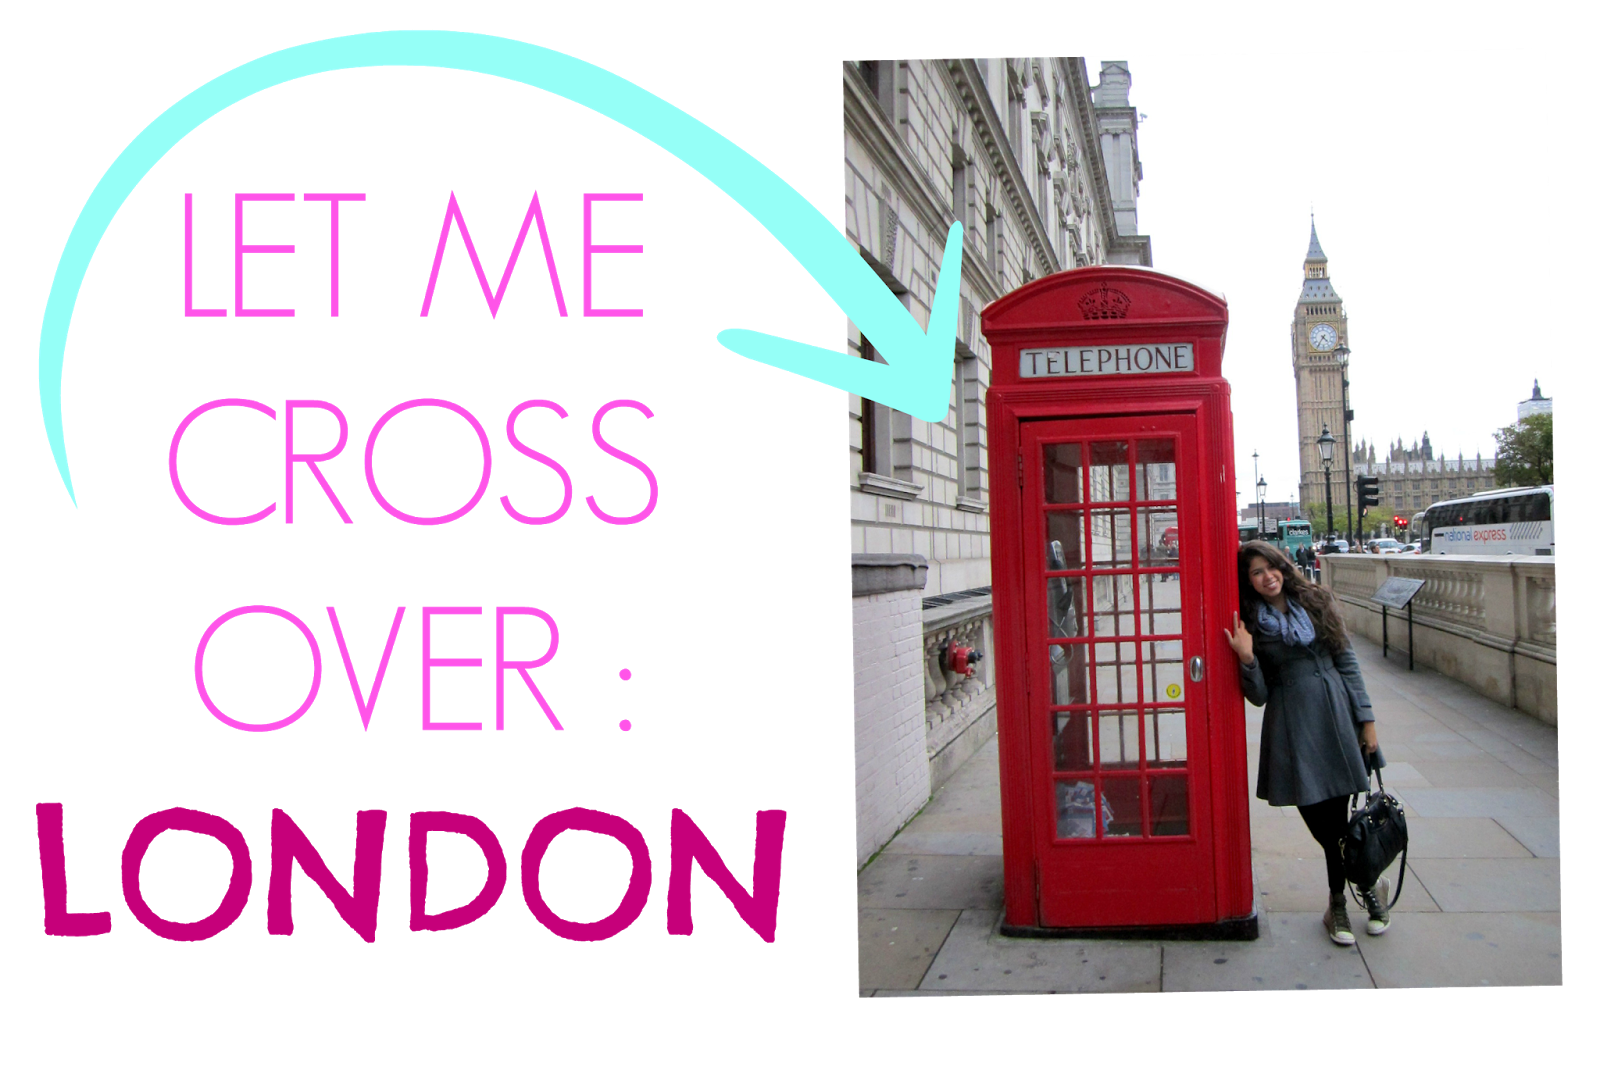 letmecrossover_london_harrypotter_covent_garden_travel_guide_united_kingdon_michele_mattos